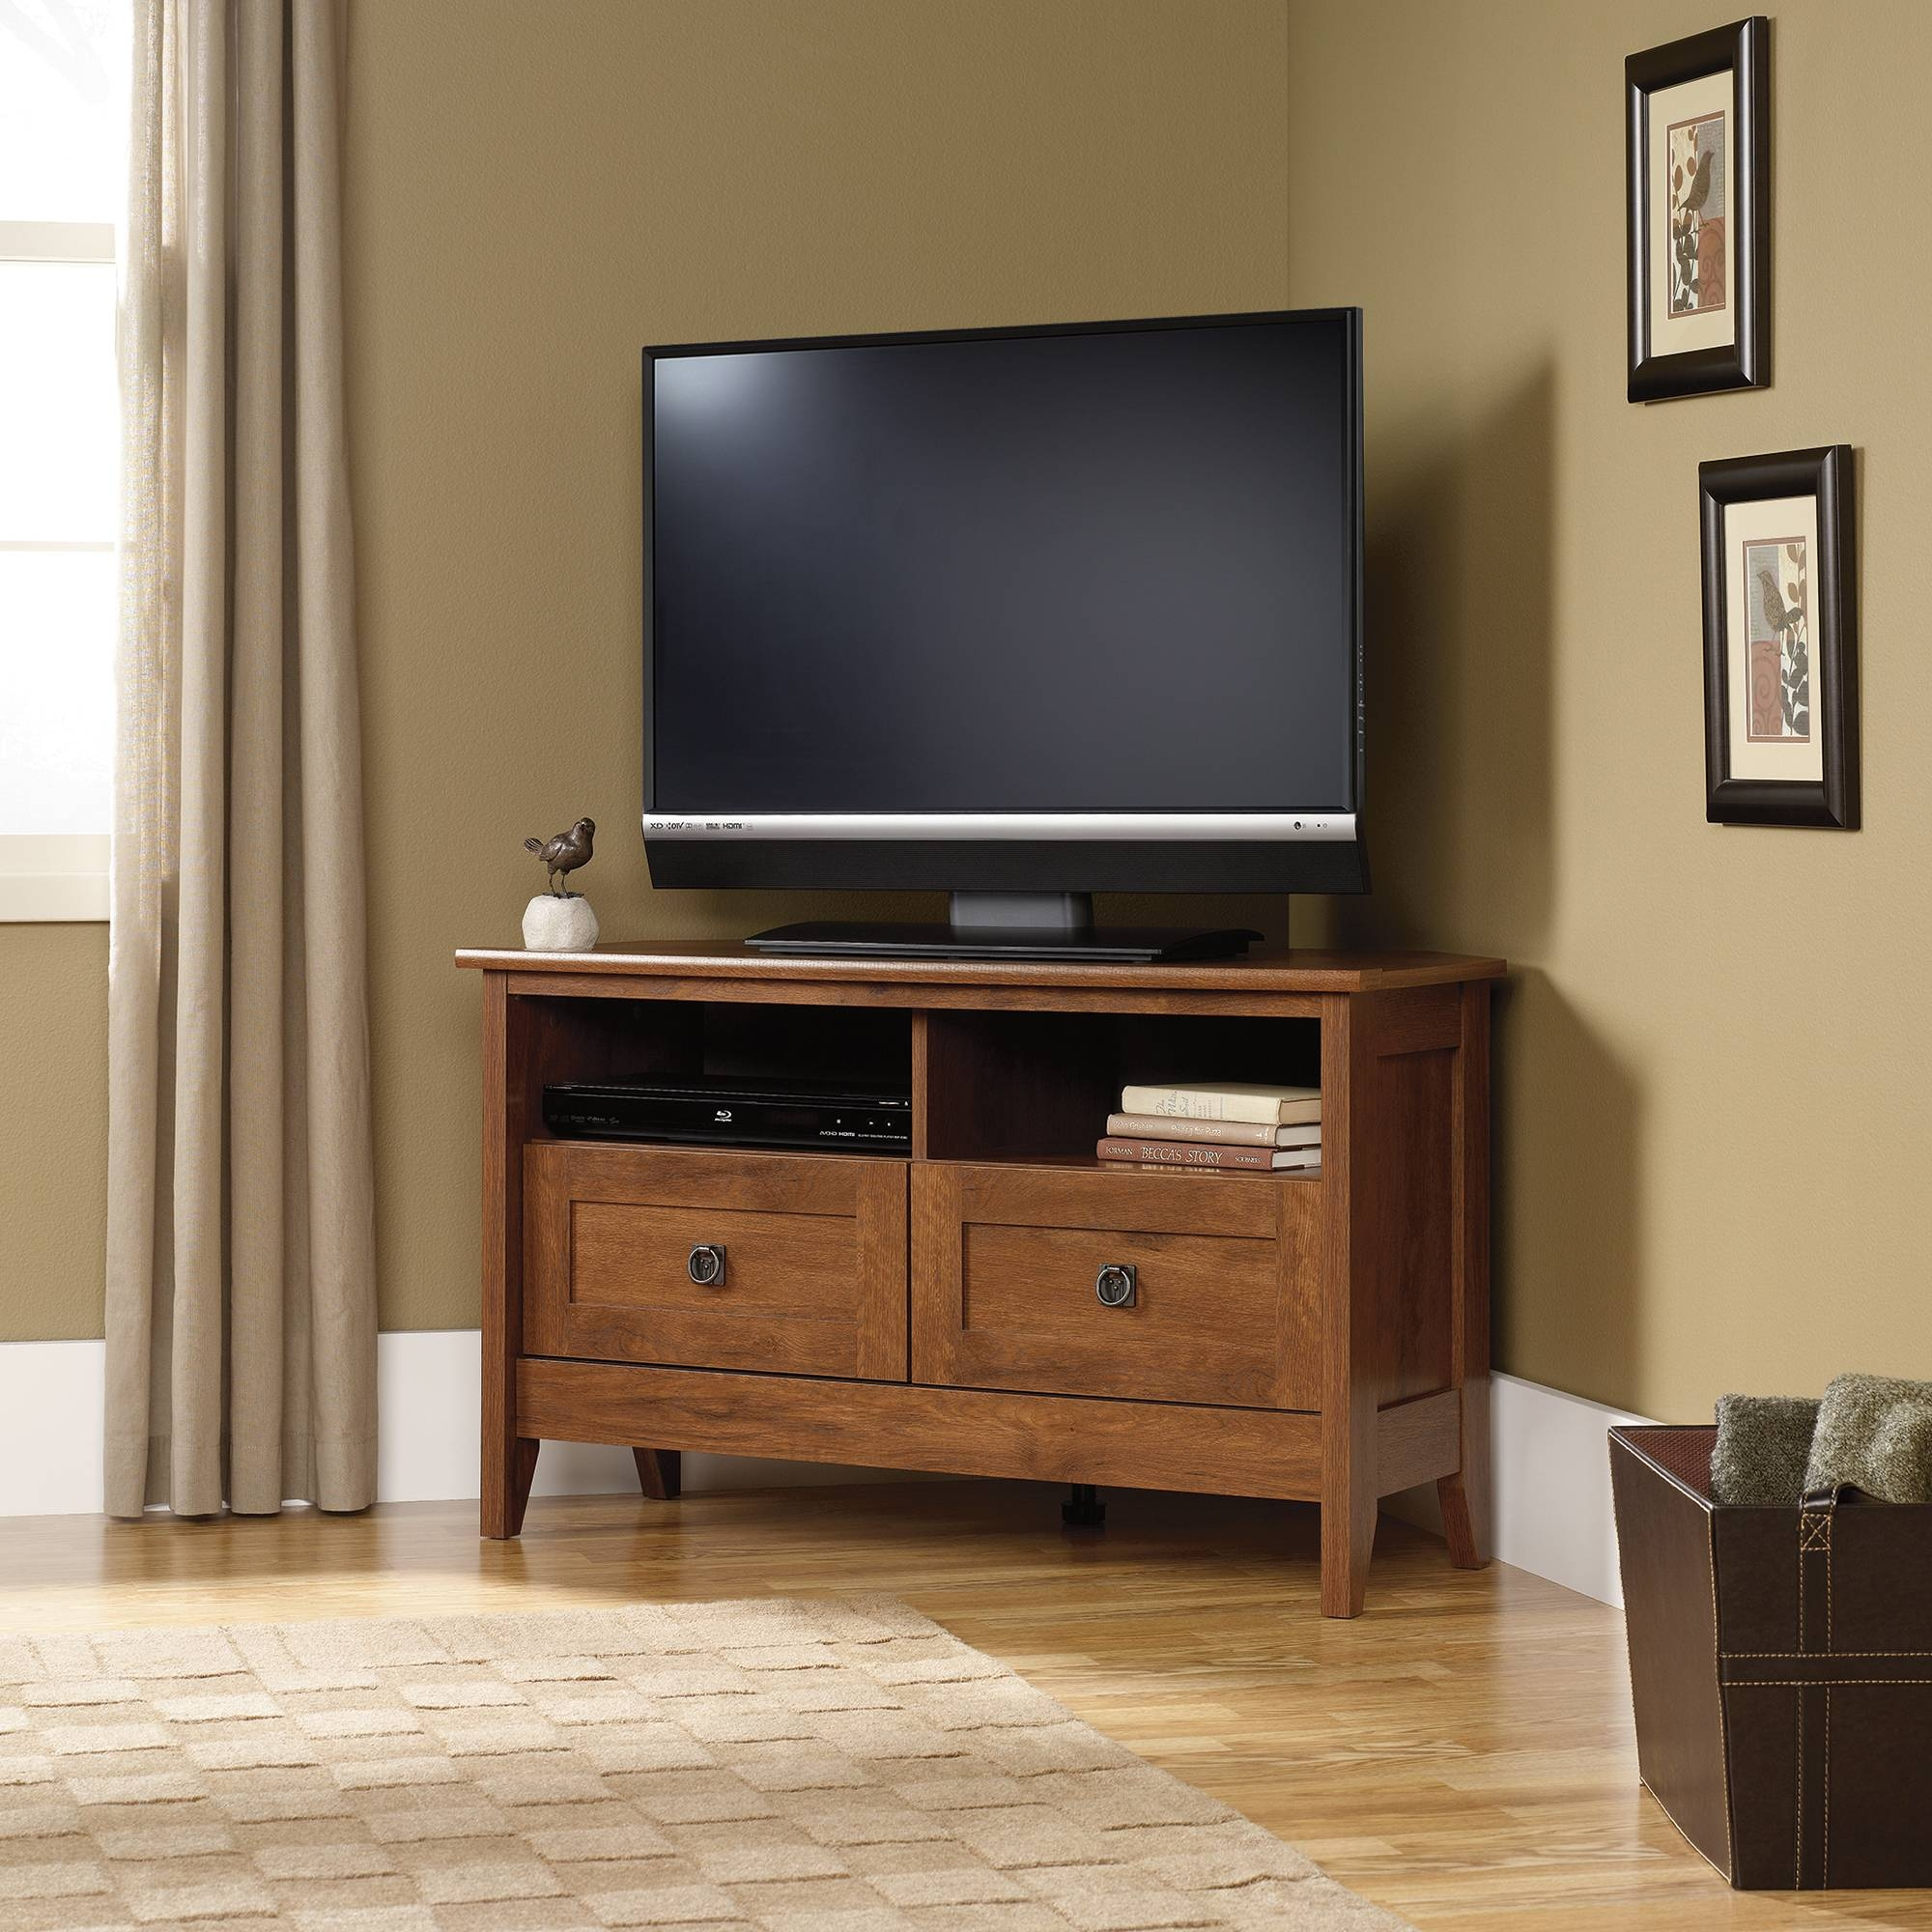 Tremendous Flat Screens New Teak Furnitures As Wells As Flat with Corner Tv Cabinets For Flat Screens With Doors (Image 10 of 15)